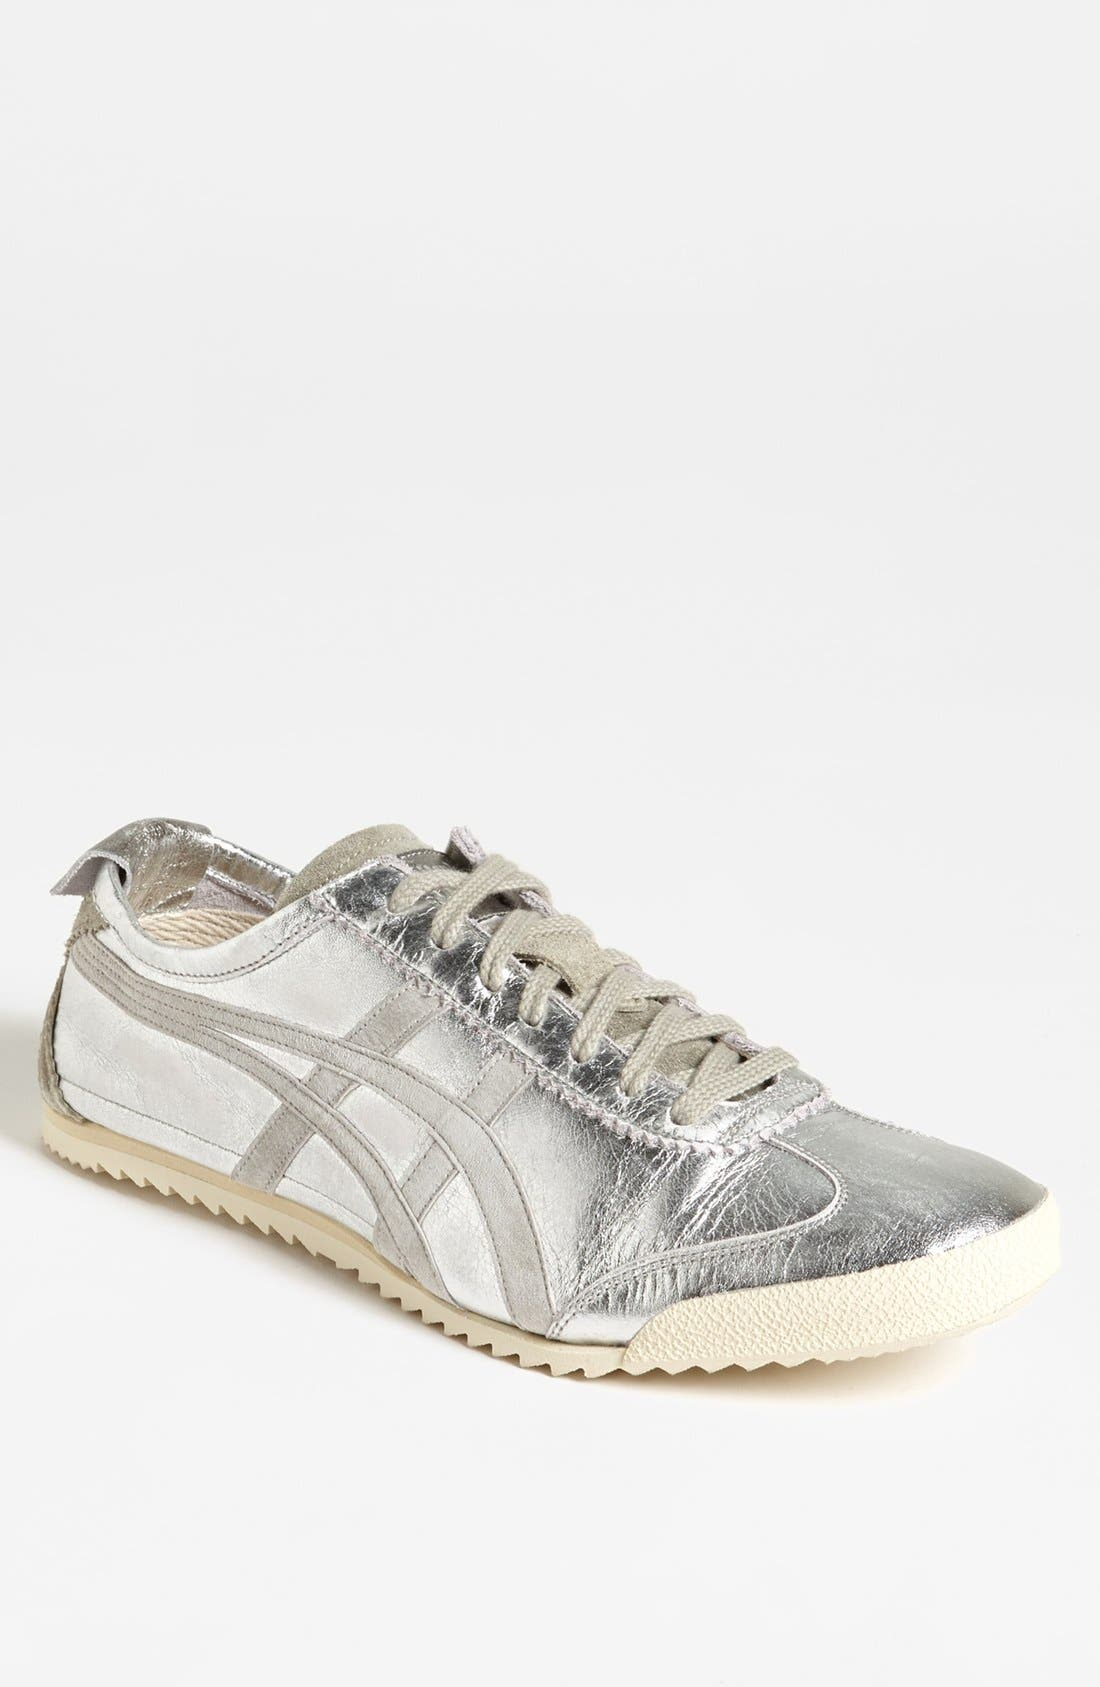 Alternate Image 1 Selected - Onitsuka Tiger™ 'Mexico 66 Deluxe' Sneaker